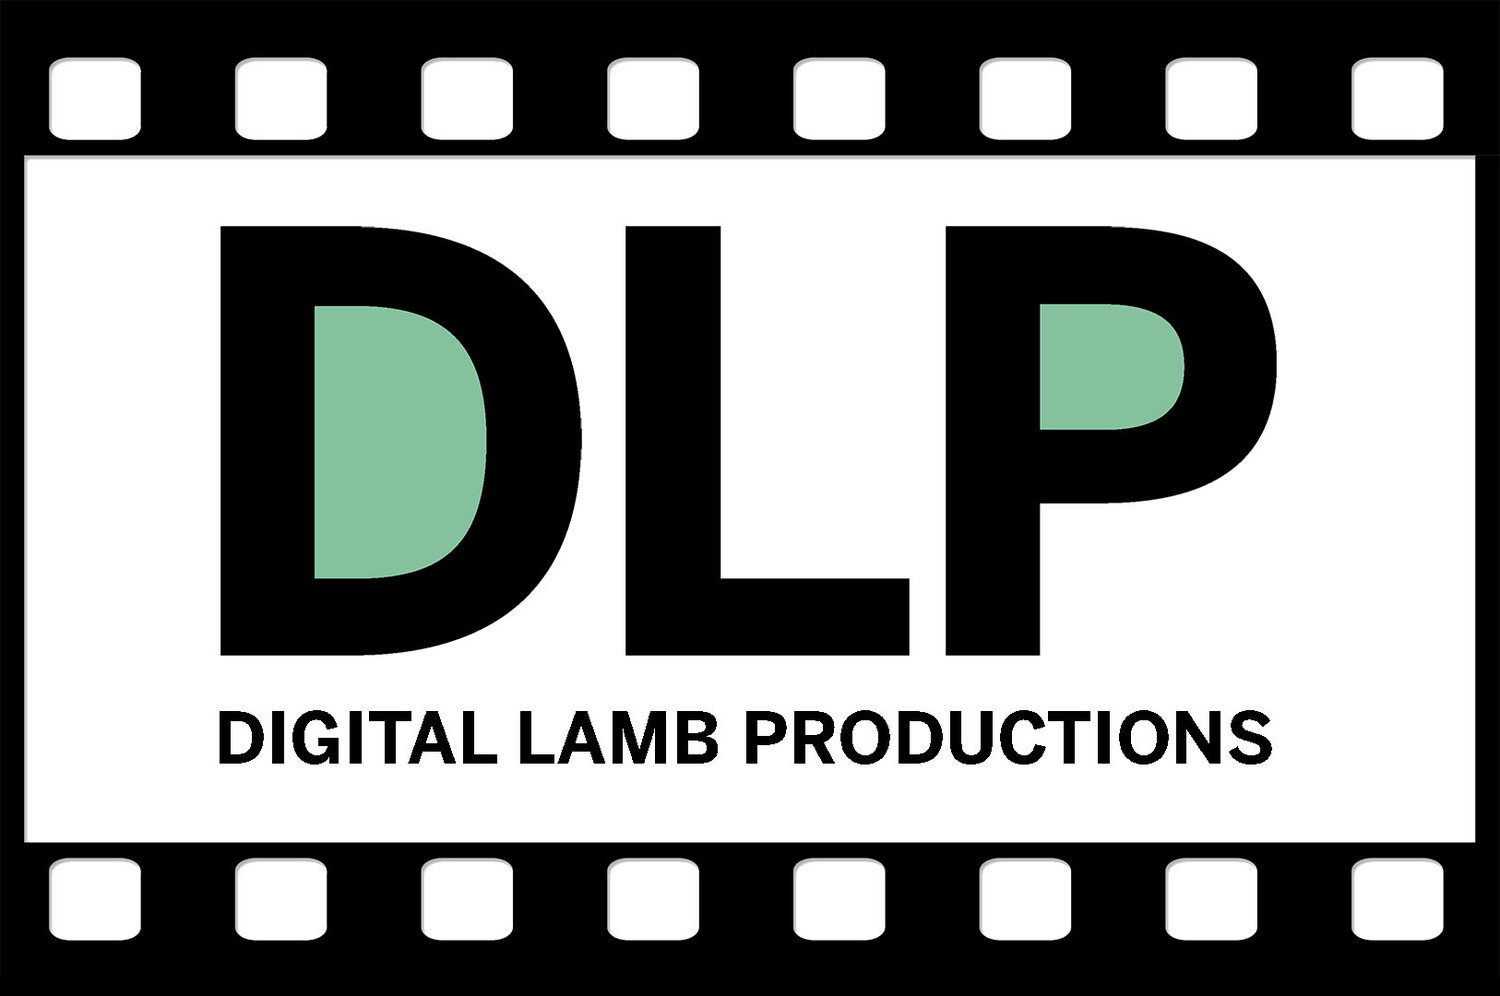 Digital Lamb Productions